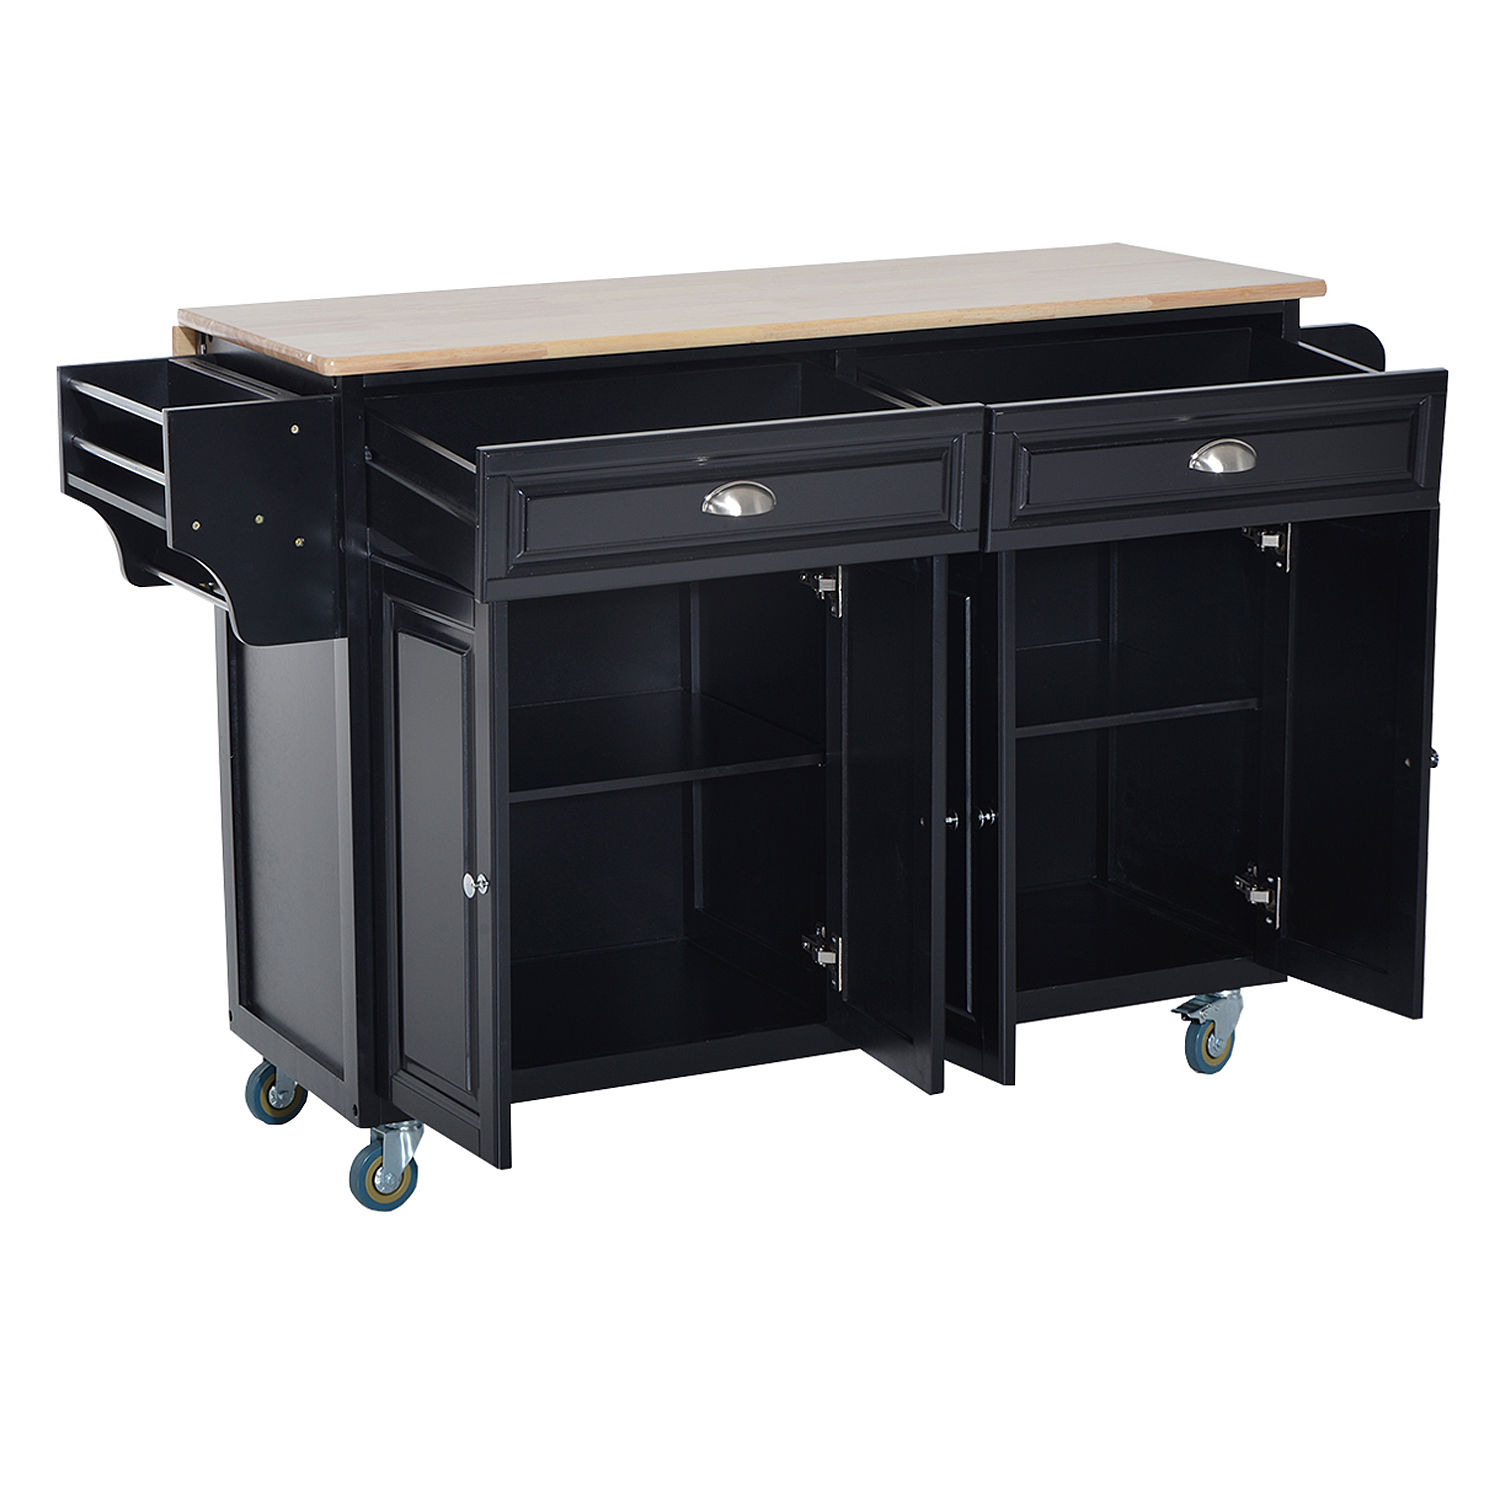 Utility Kitchen Cabinet Modern Kitchen Cart Island Rolling Cabinet Utility Wood